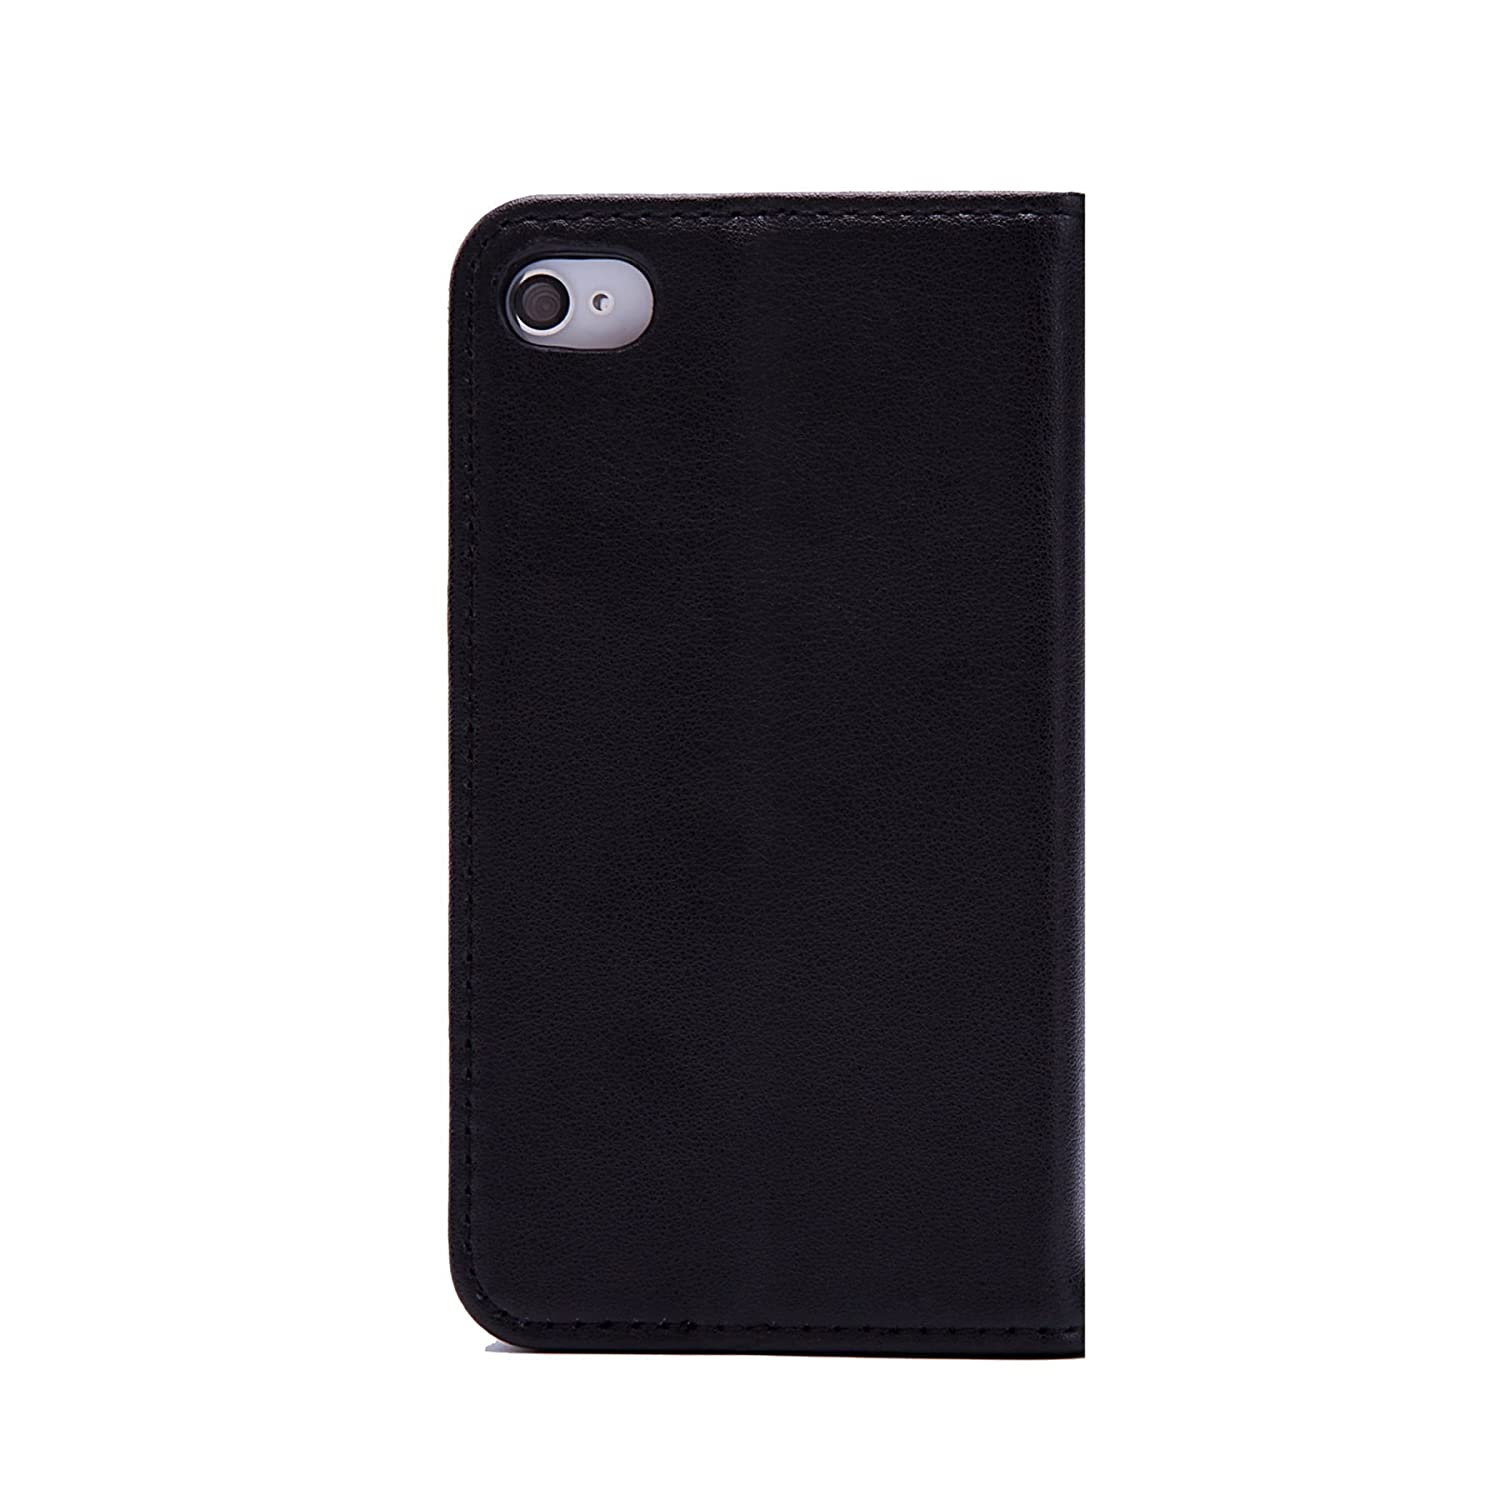 f12d89fb11 32nd Classic Series - Real Leather Book Wallet Case Cover for Apple iPhone  4 & 4S, Real Leather Design with Card Slot, Magnetic Closure and Built in  Stand - ...